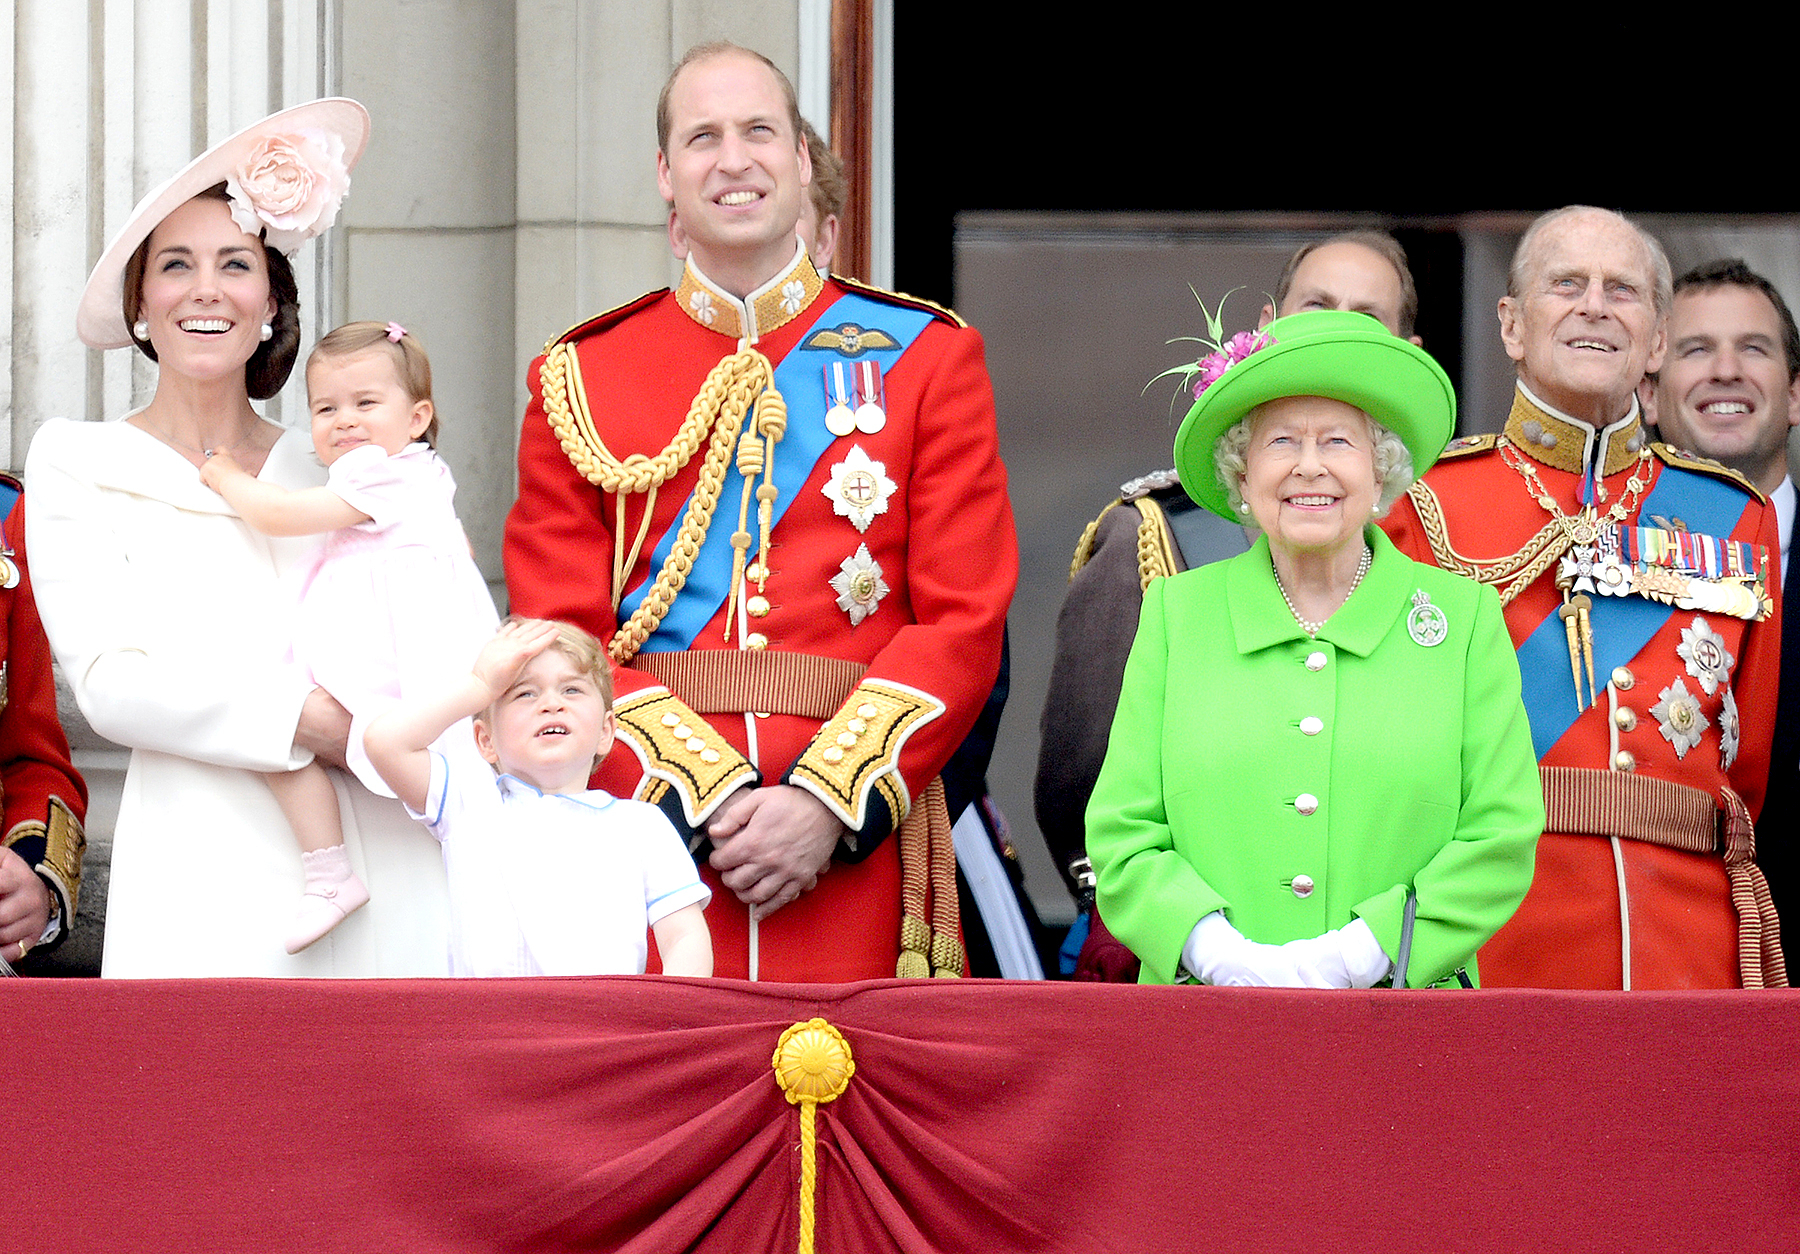 Catherine, Duchess of Cambridge, Princess Charlotte of Cambridge, Prince George of Cambridge, Prince William, Duke of Cambridge, Queen Elizabeth II and Prince Philip, The Duke of Edinburgh during the Trooping the Colour, this year marking the Queen's official 90th birthday at The Mall on June 11, 2016.